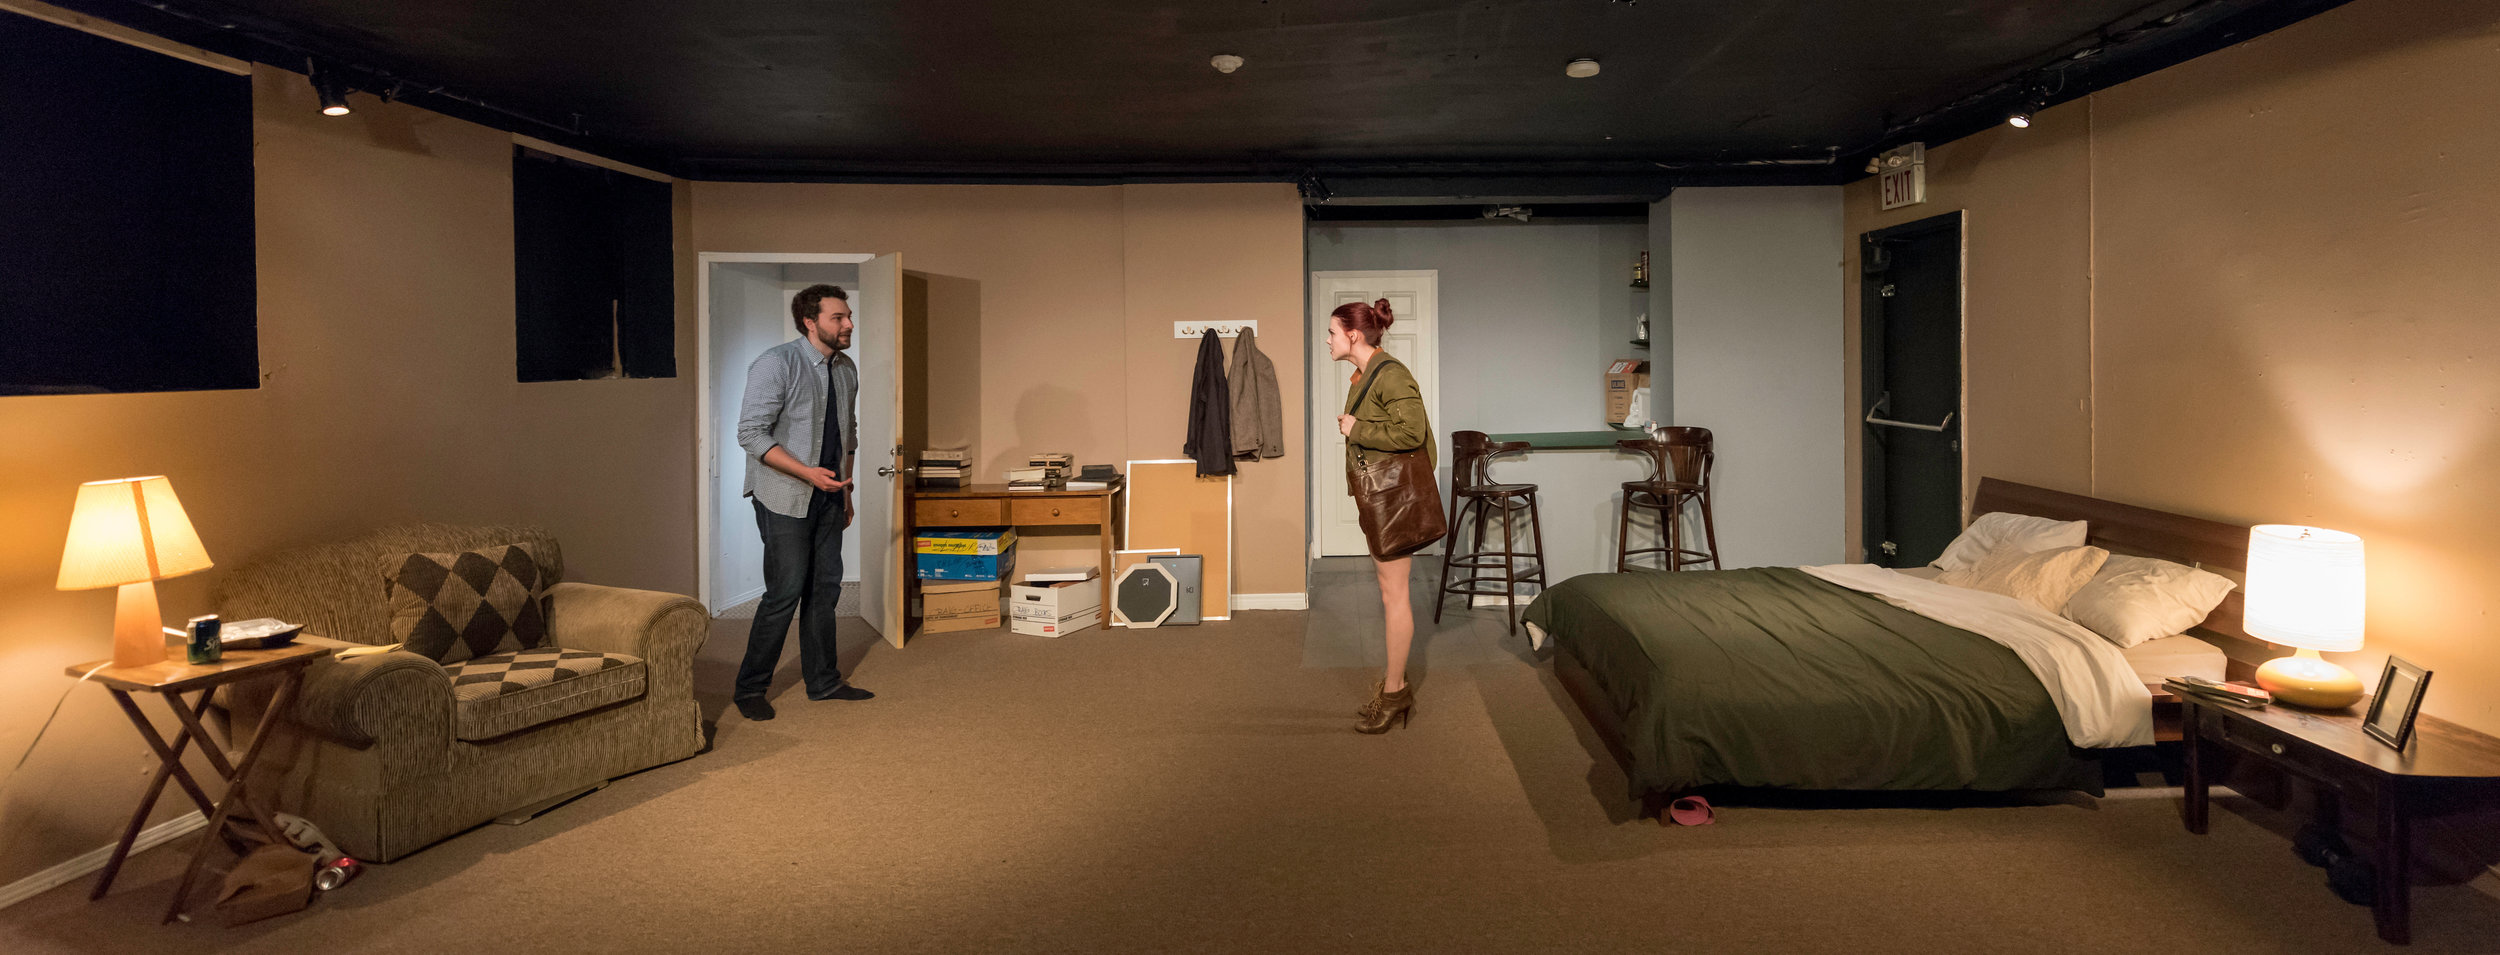 HOMEWRECKER - UNTIL MARCH 10TH AT THE ASSEMBLY THEATRETICKETS AVAILABLE NOW